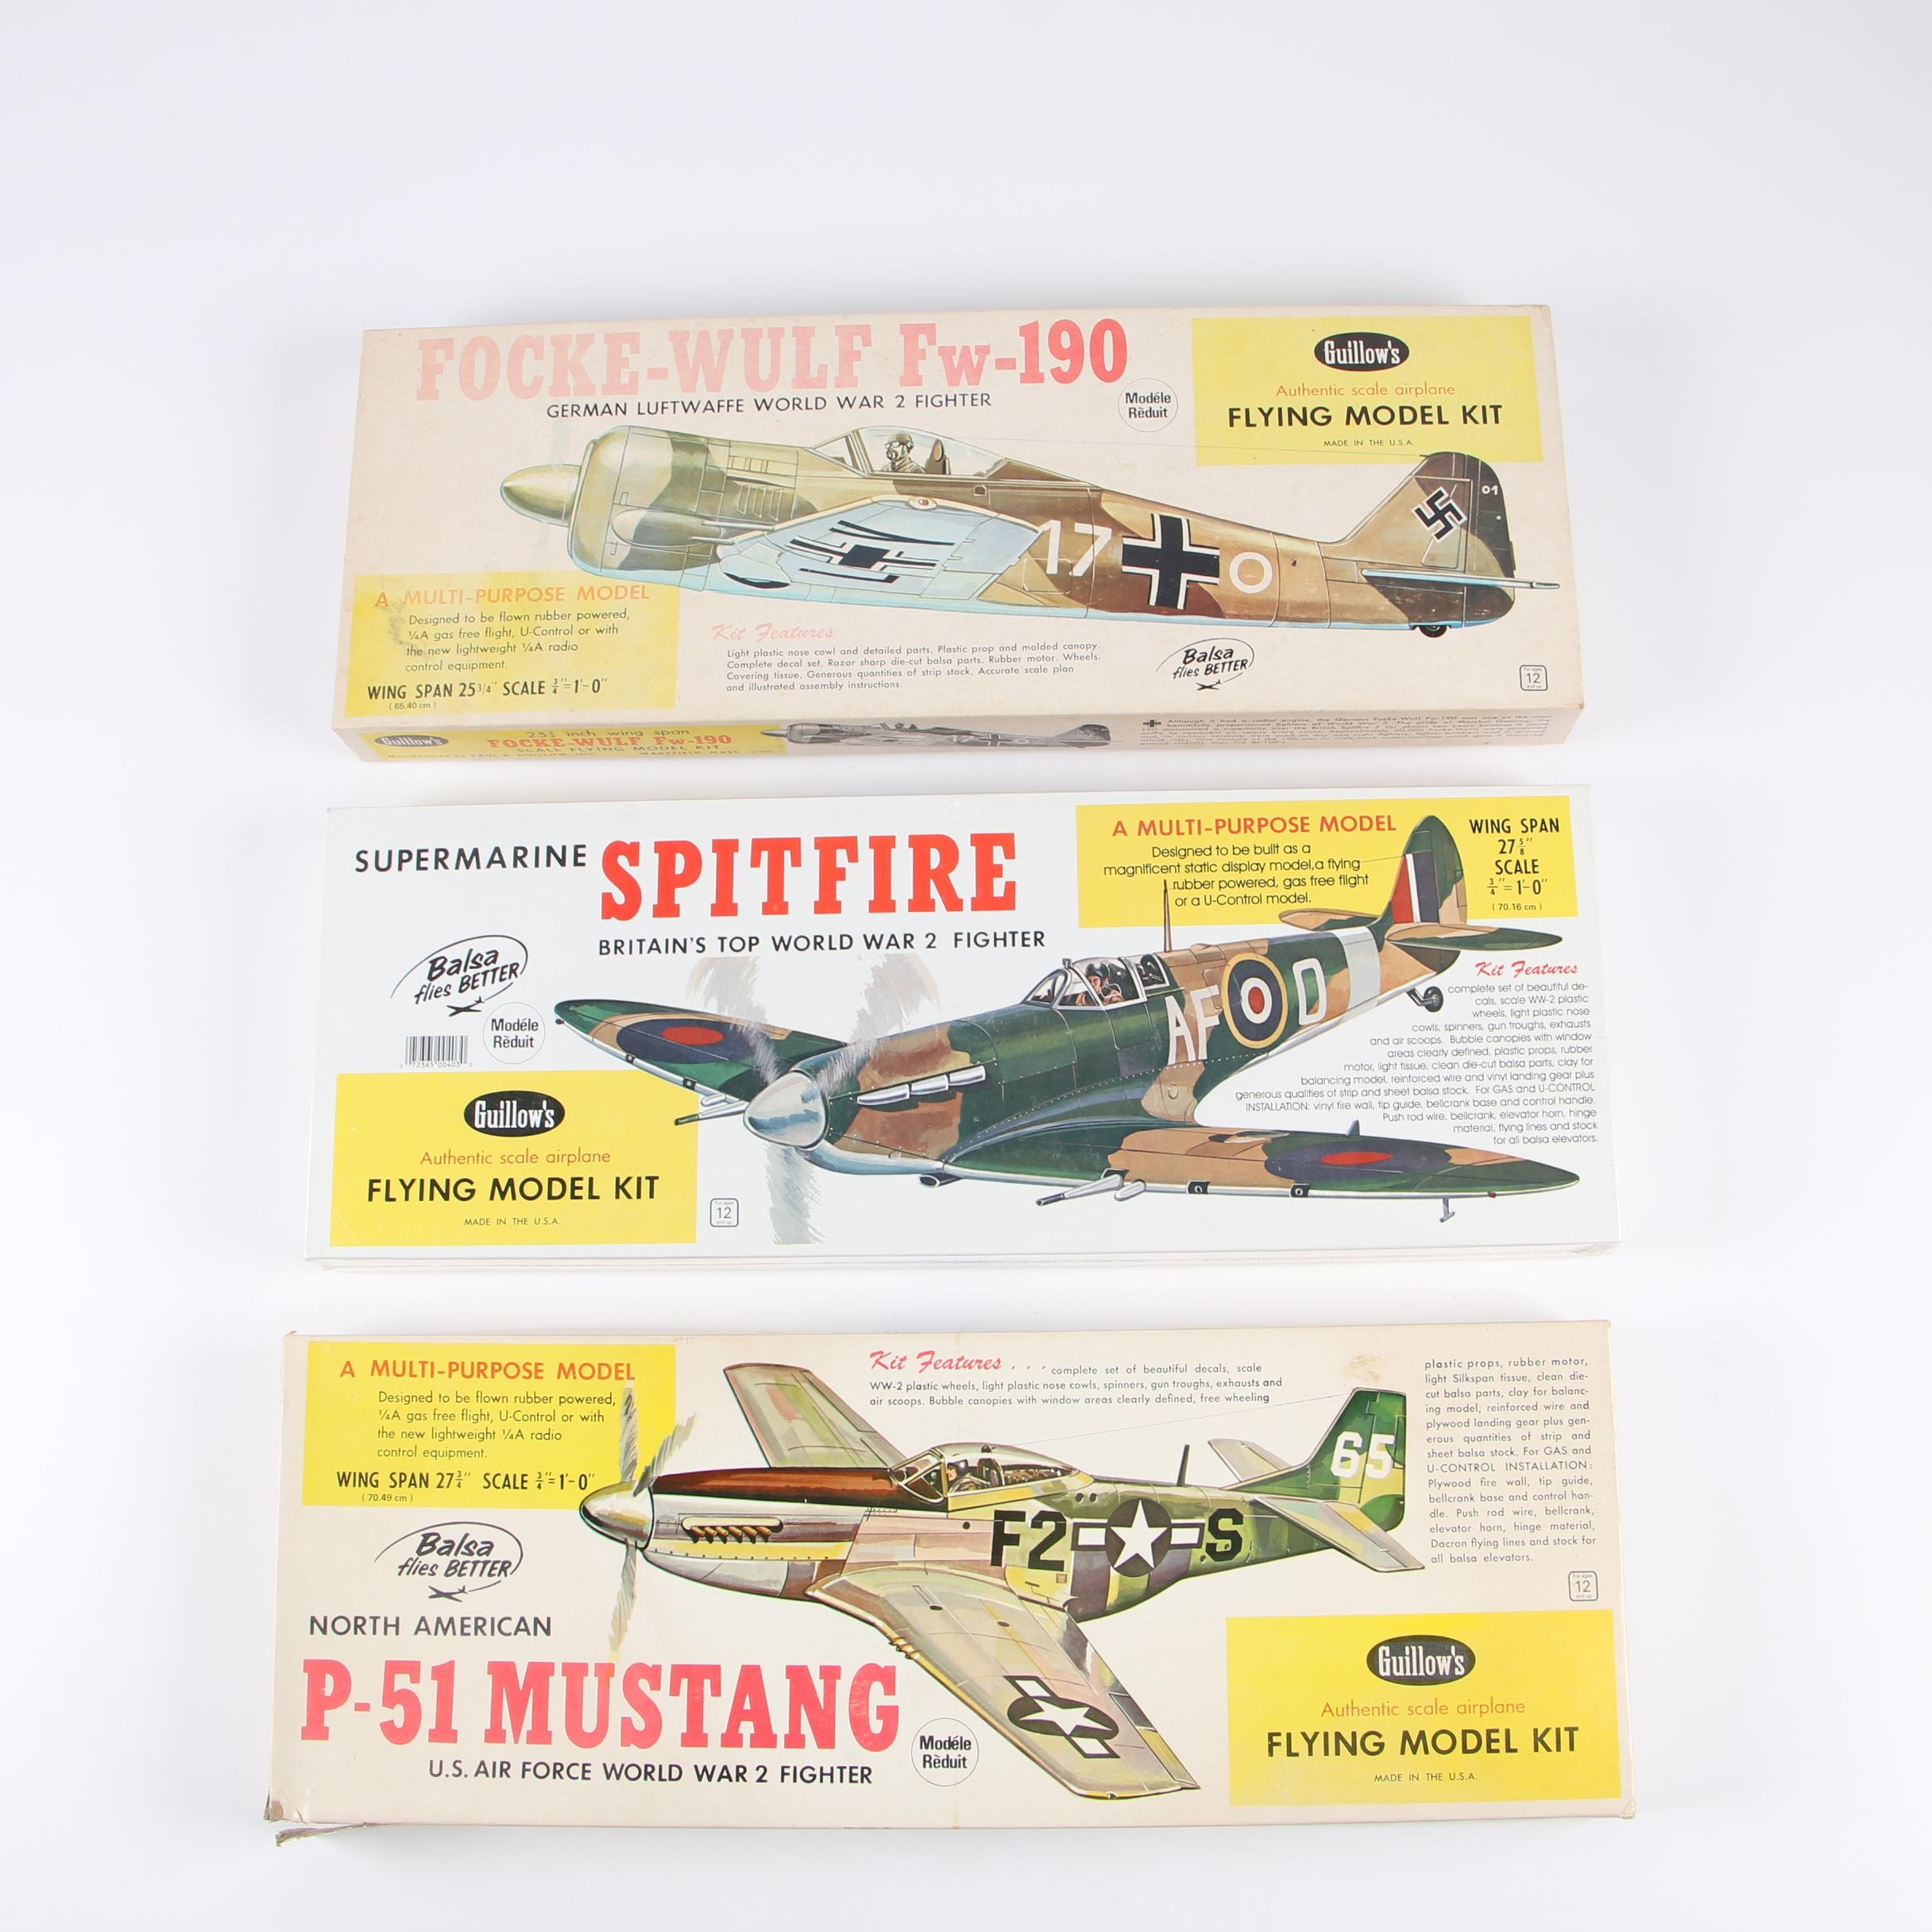 German, British, and American WWII Fighter Plane Model Kits by Guillow's